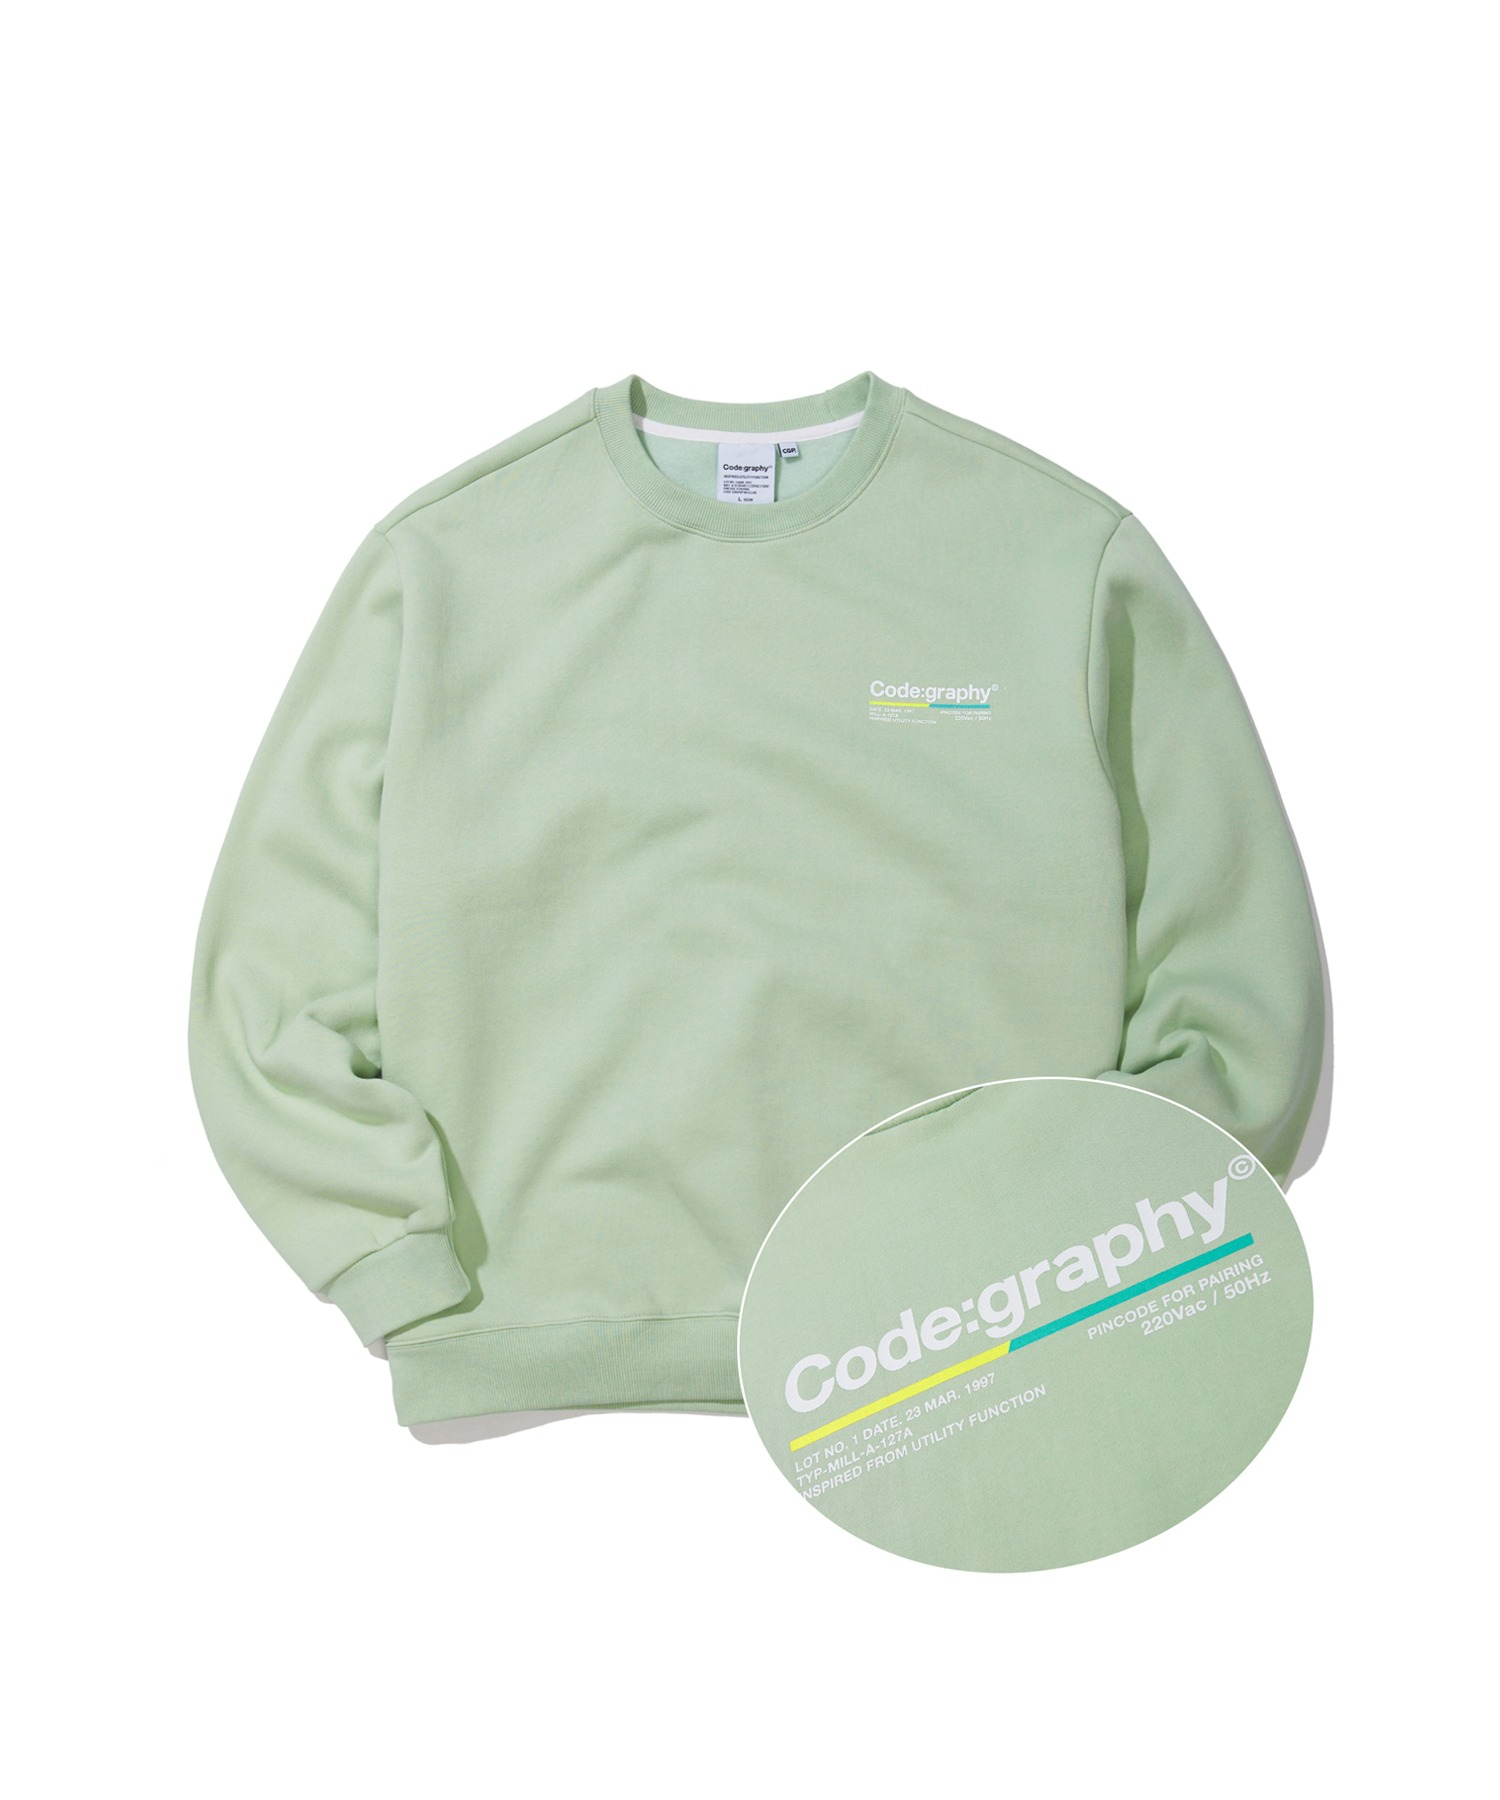 COLOR CHIP LOGO CREWNECK - MN